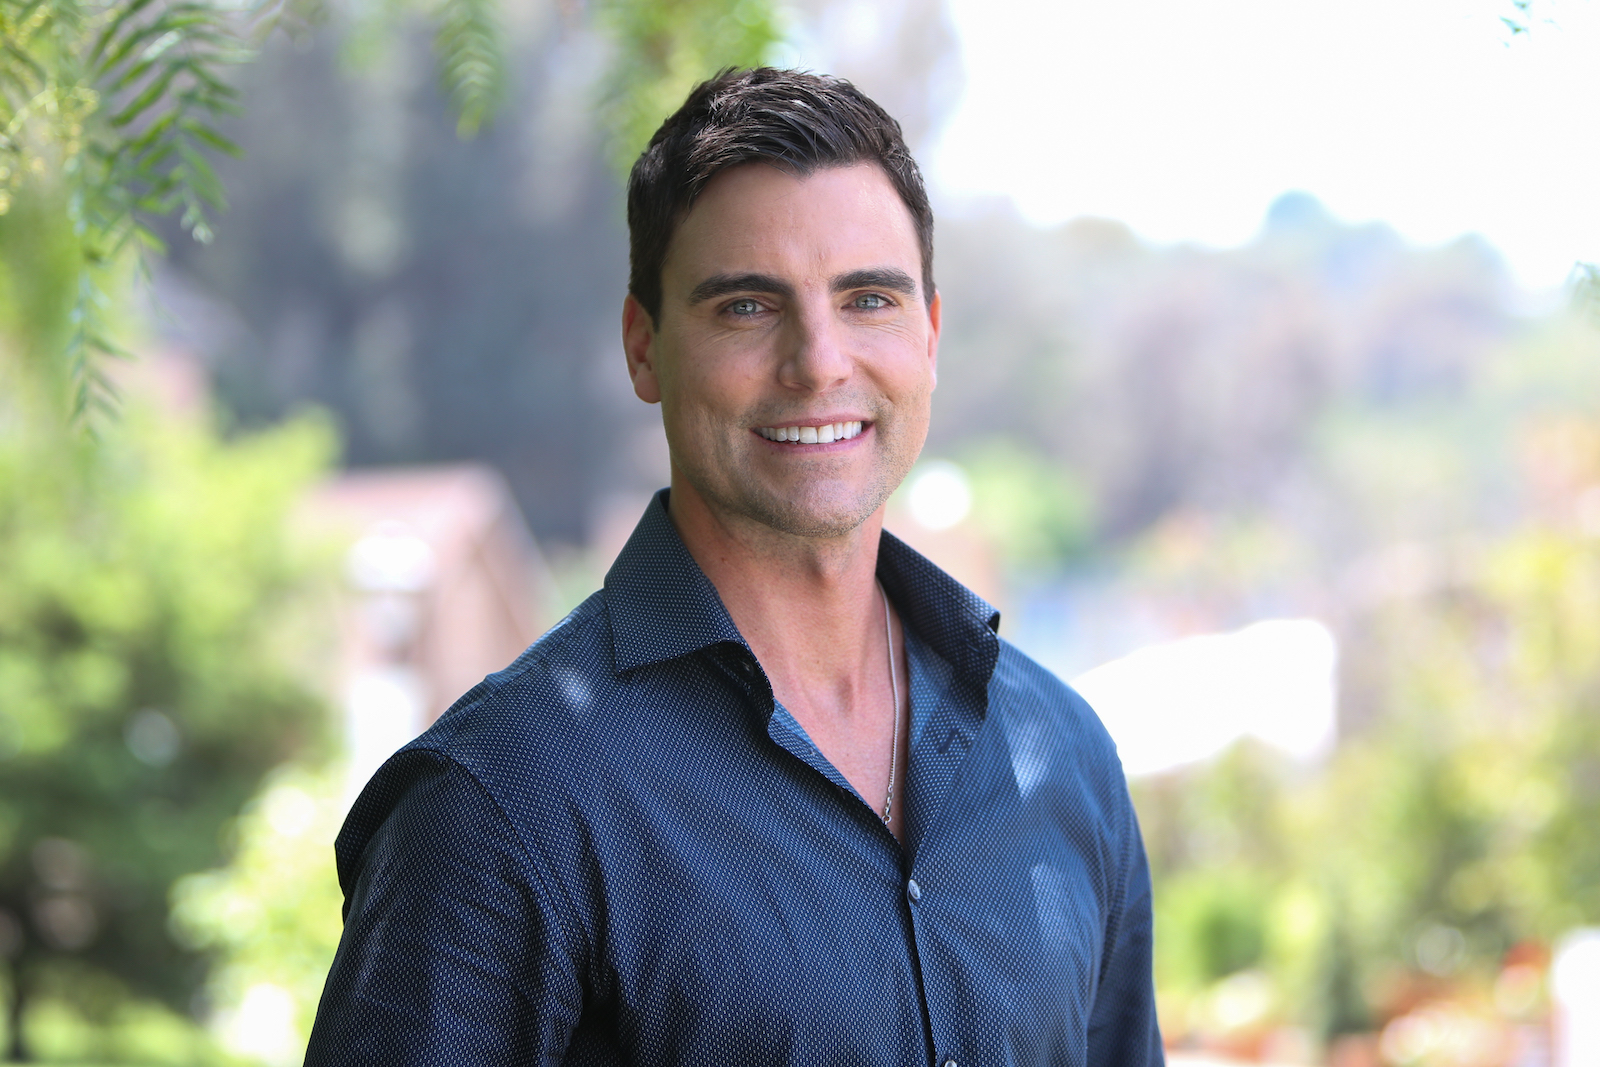 Something Borrowed Colin Egglesfield has a resemblance to actor Tom Cruise